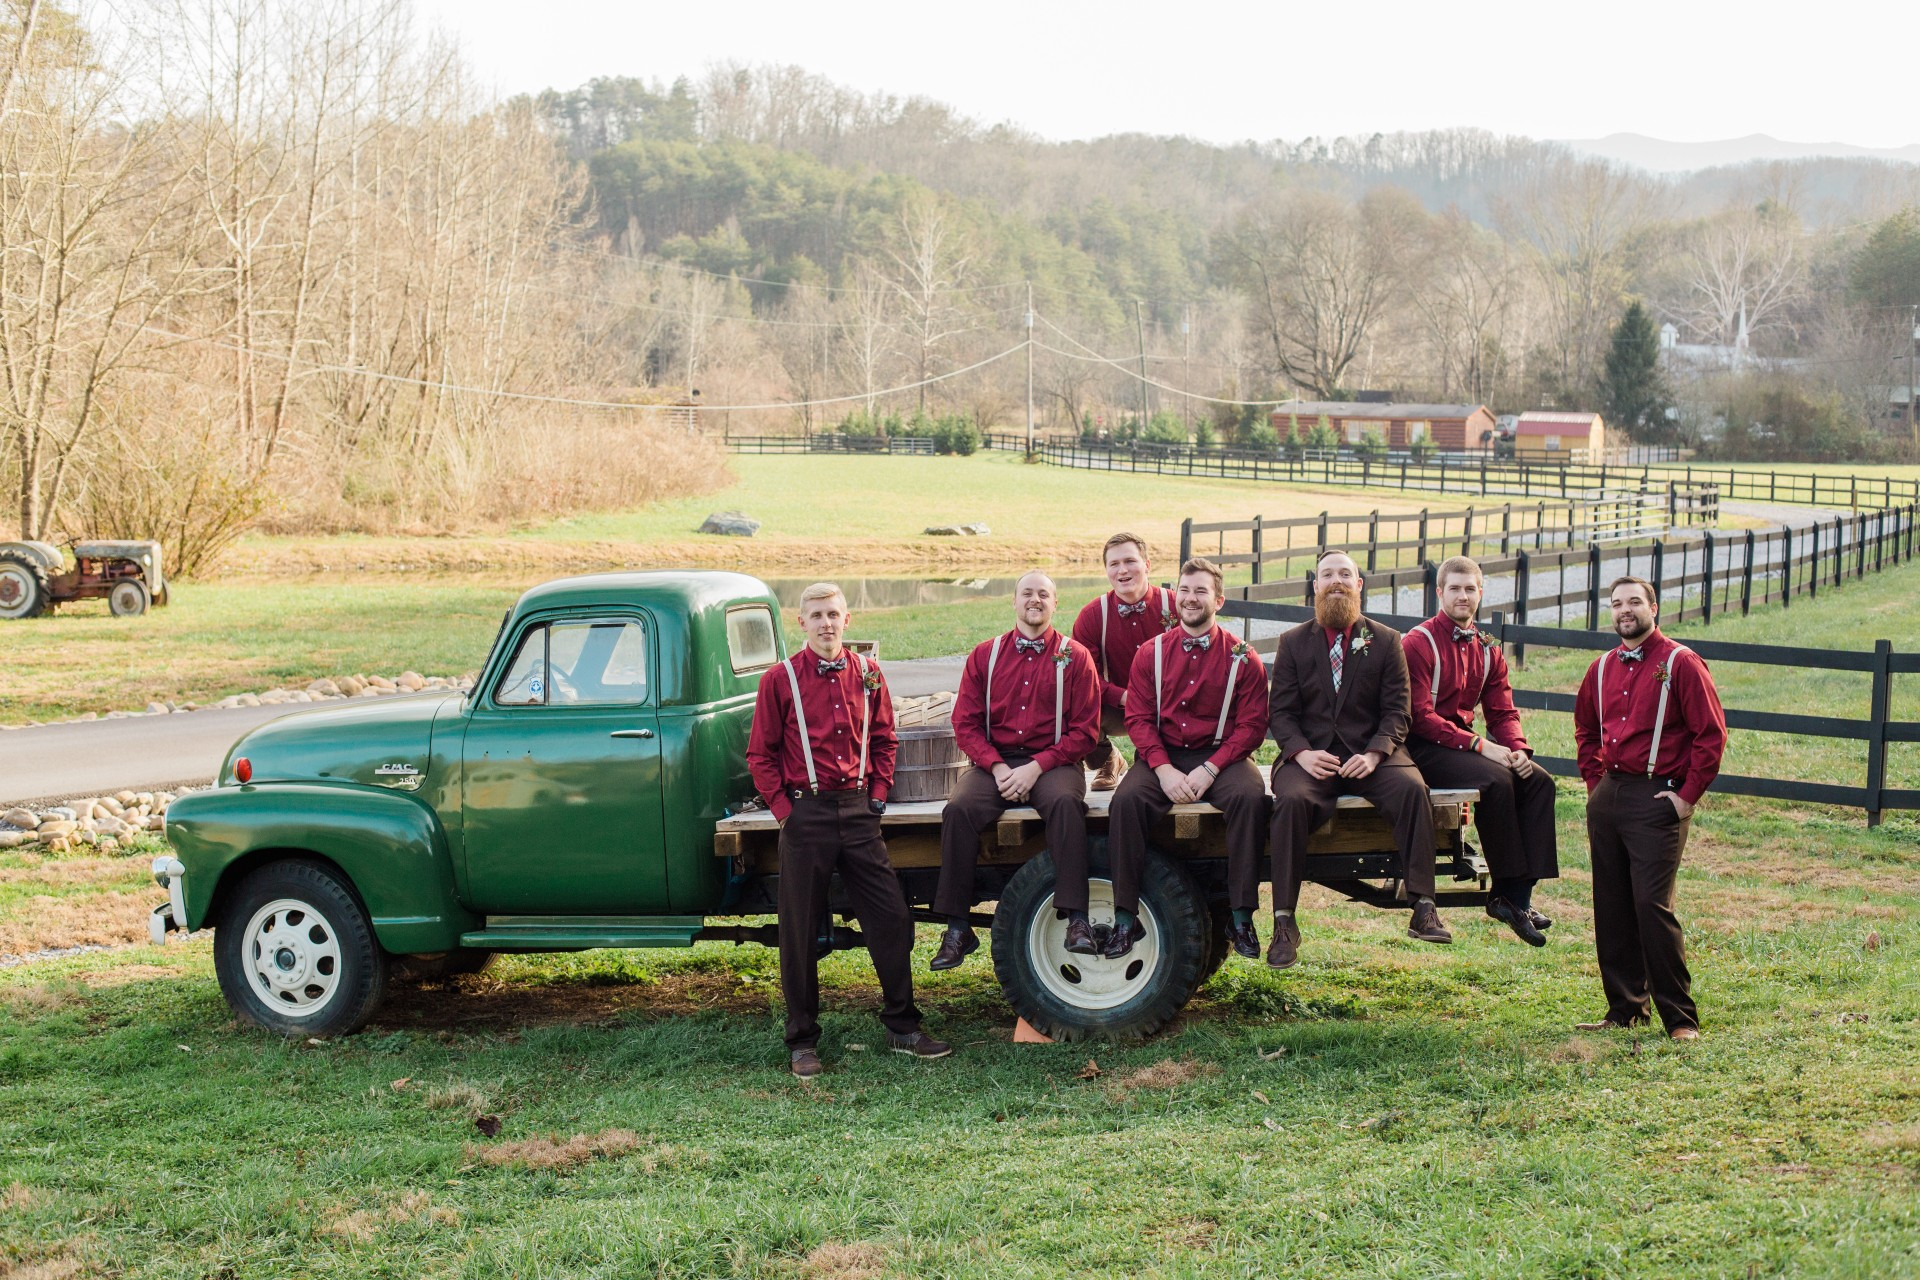 Groom's Party with Vintage Truck 4 Points Farm